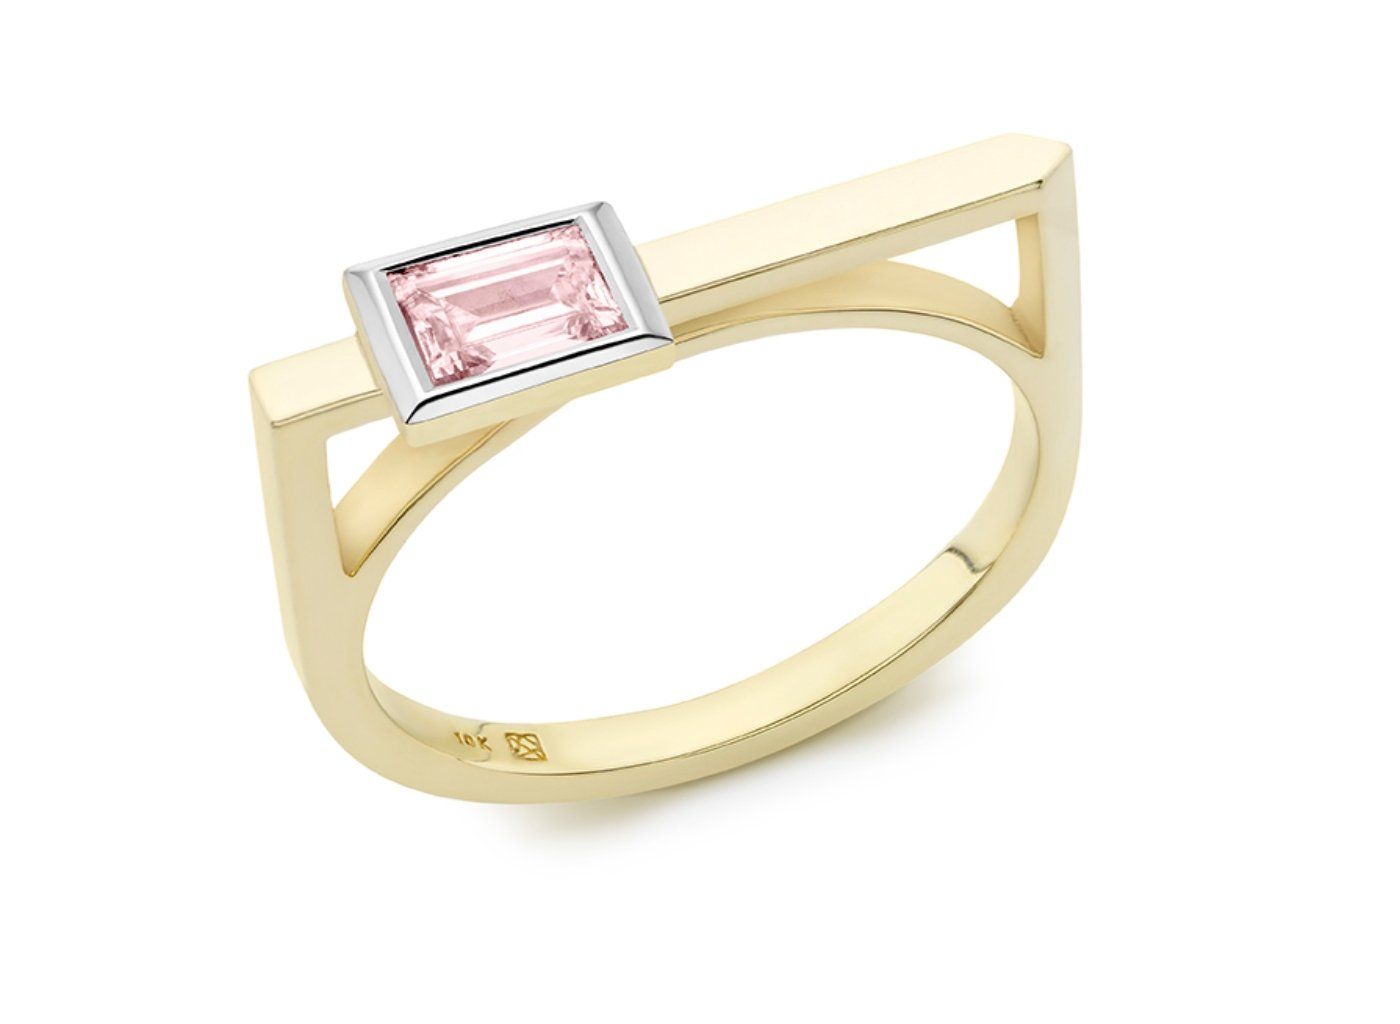 Side view of Baguette linear 3/8 carat ring with pink diamond